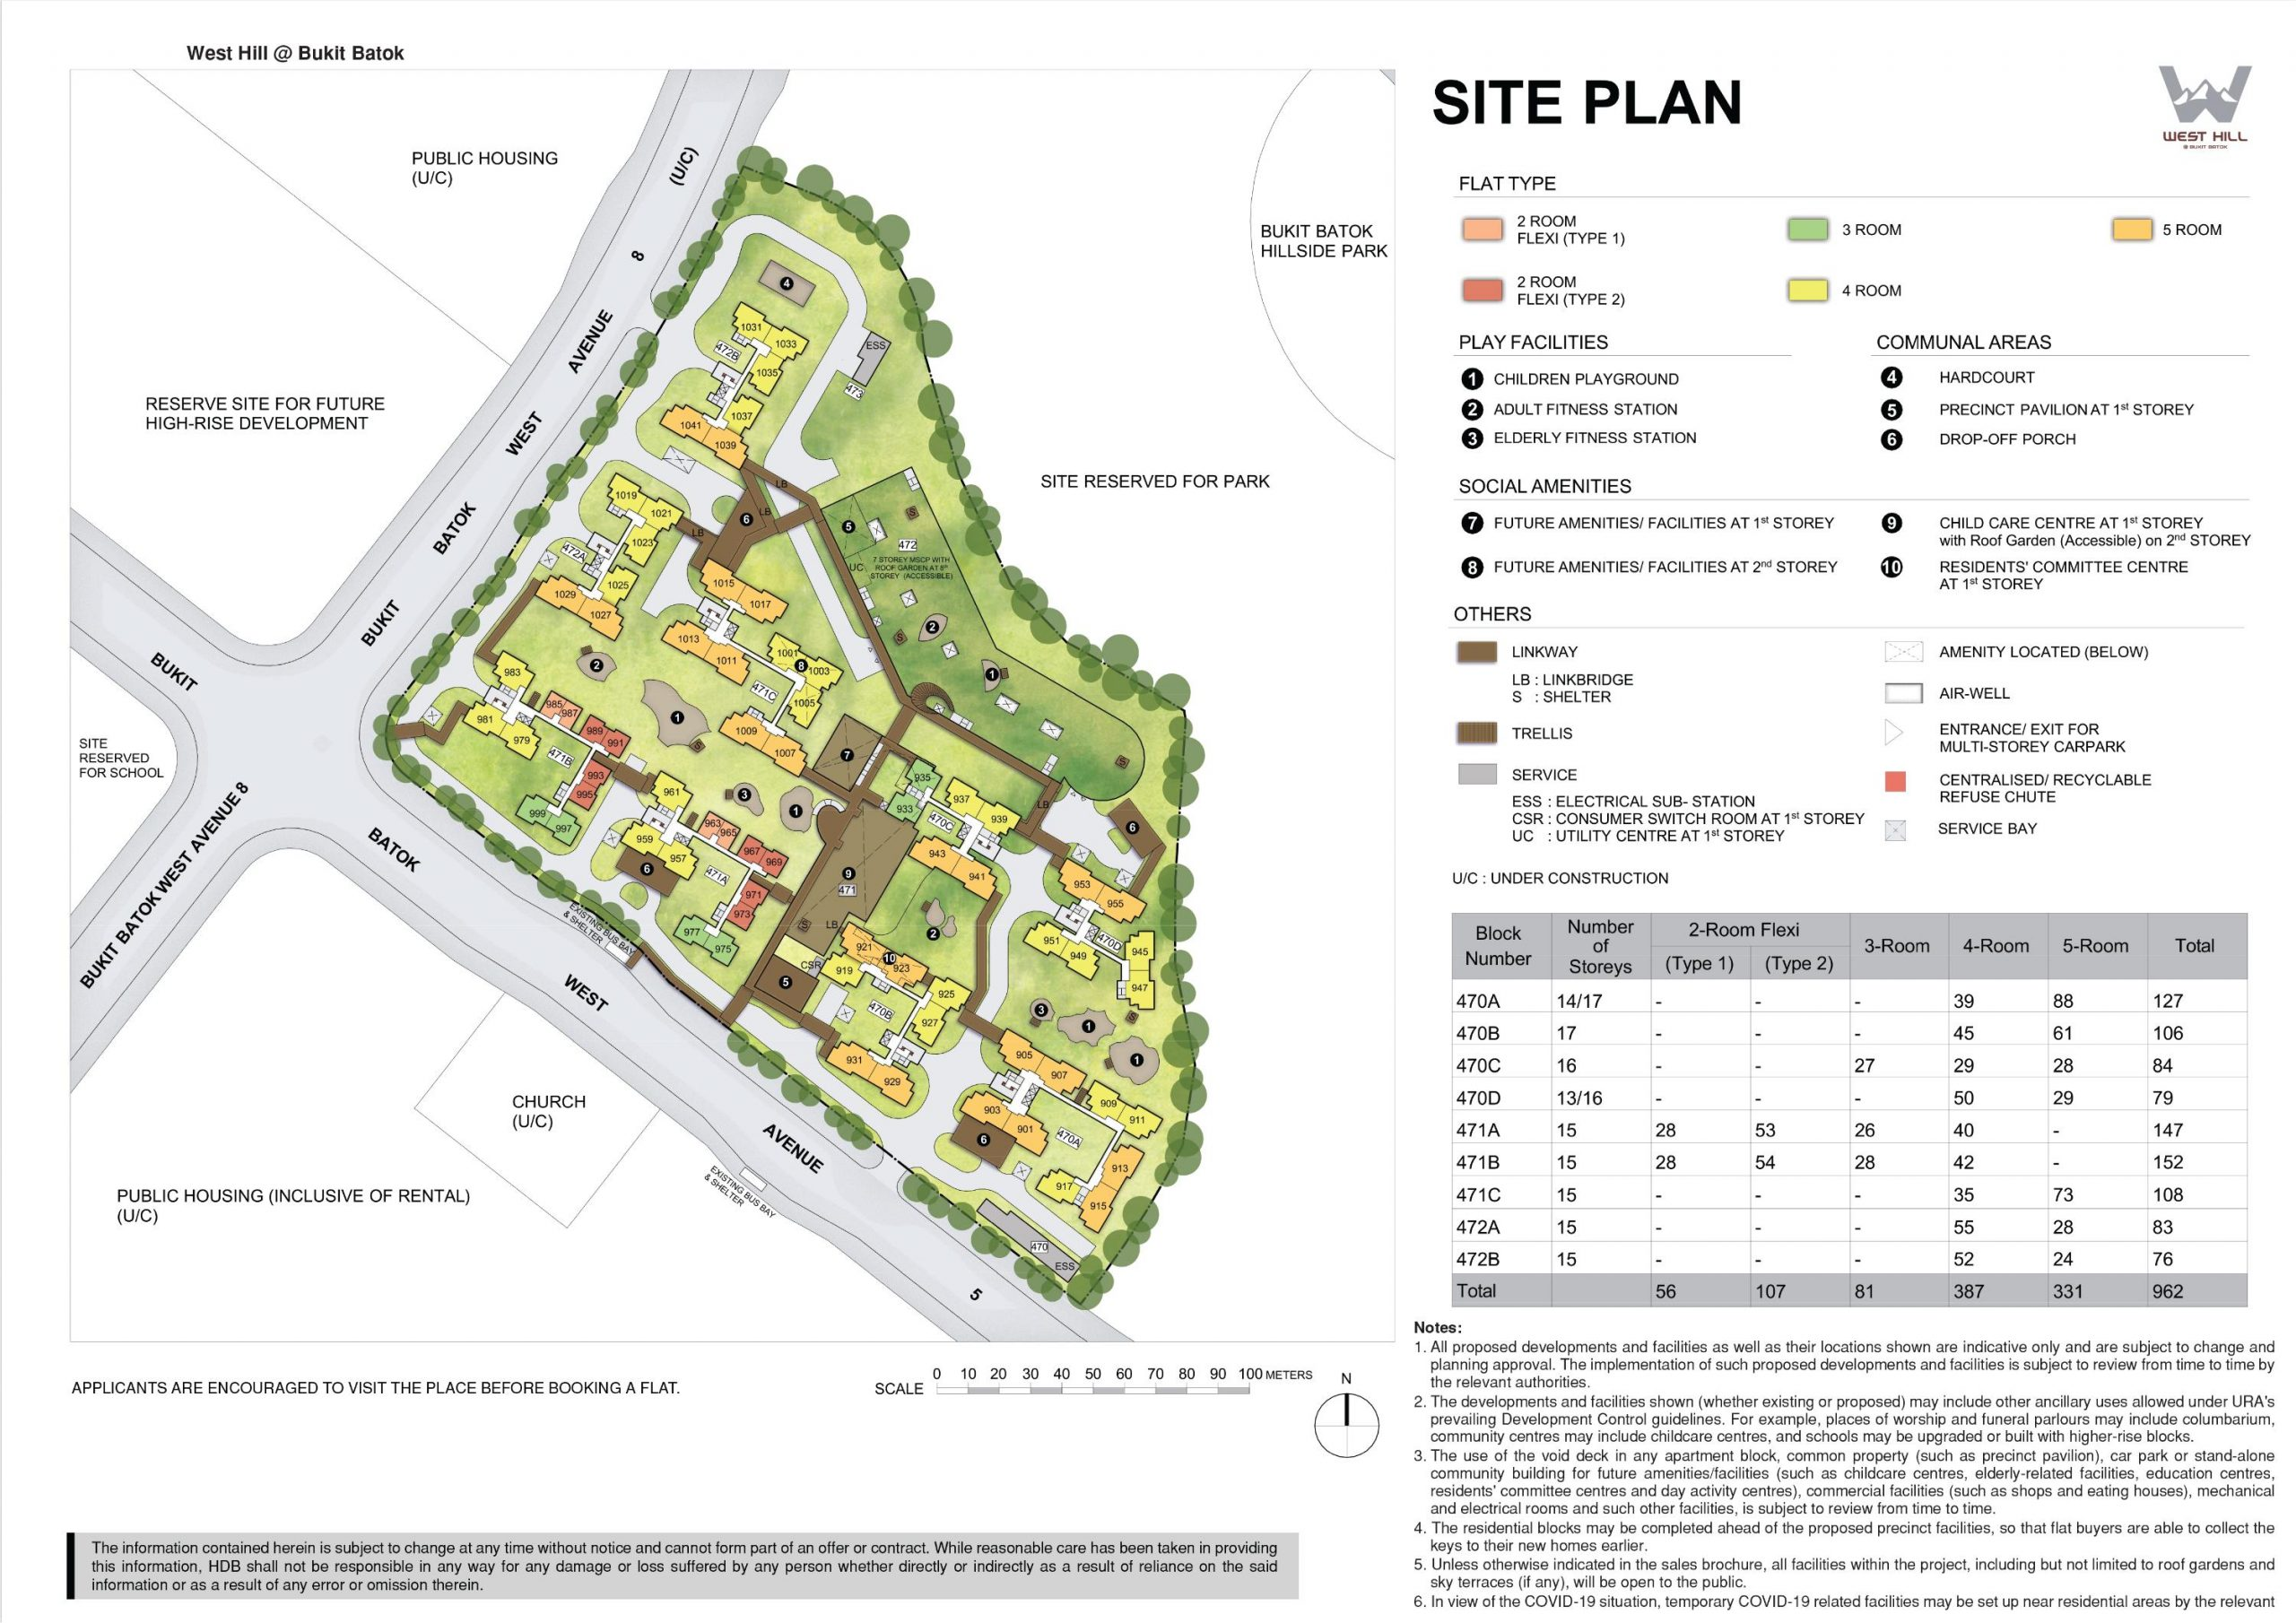 west hill bukit batok feb 2021 bto hdb site plan